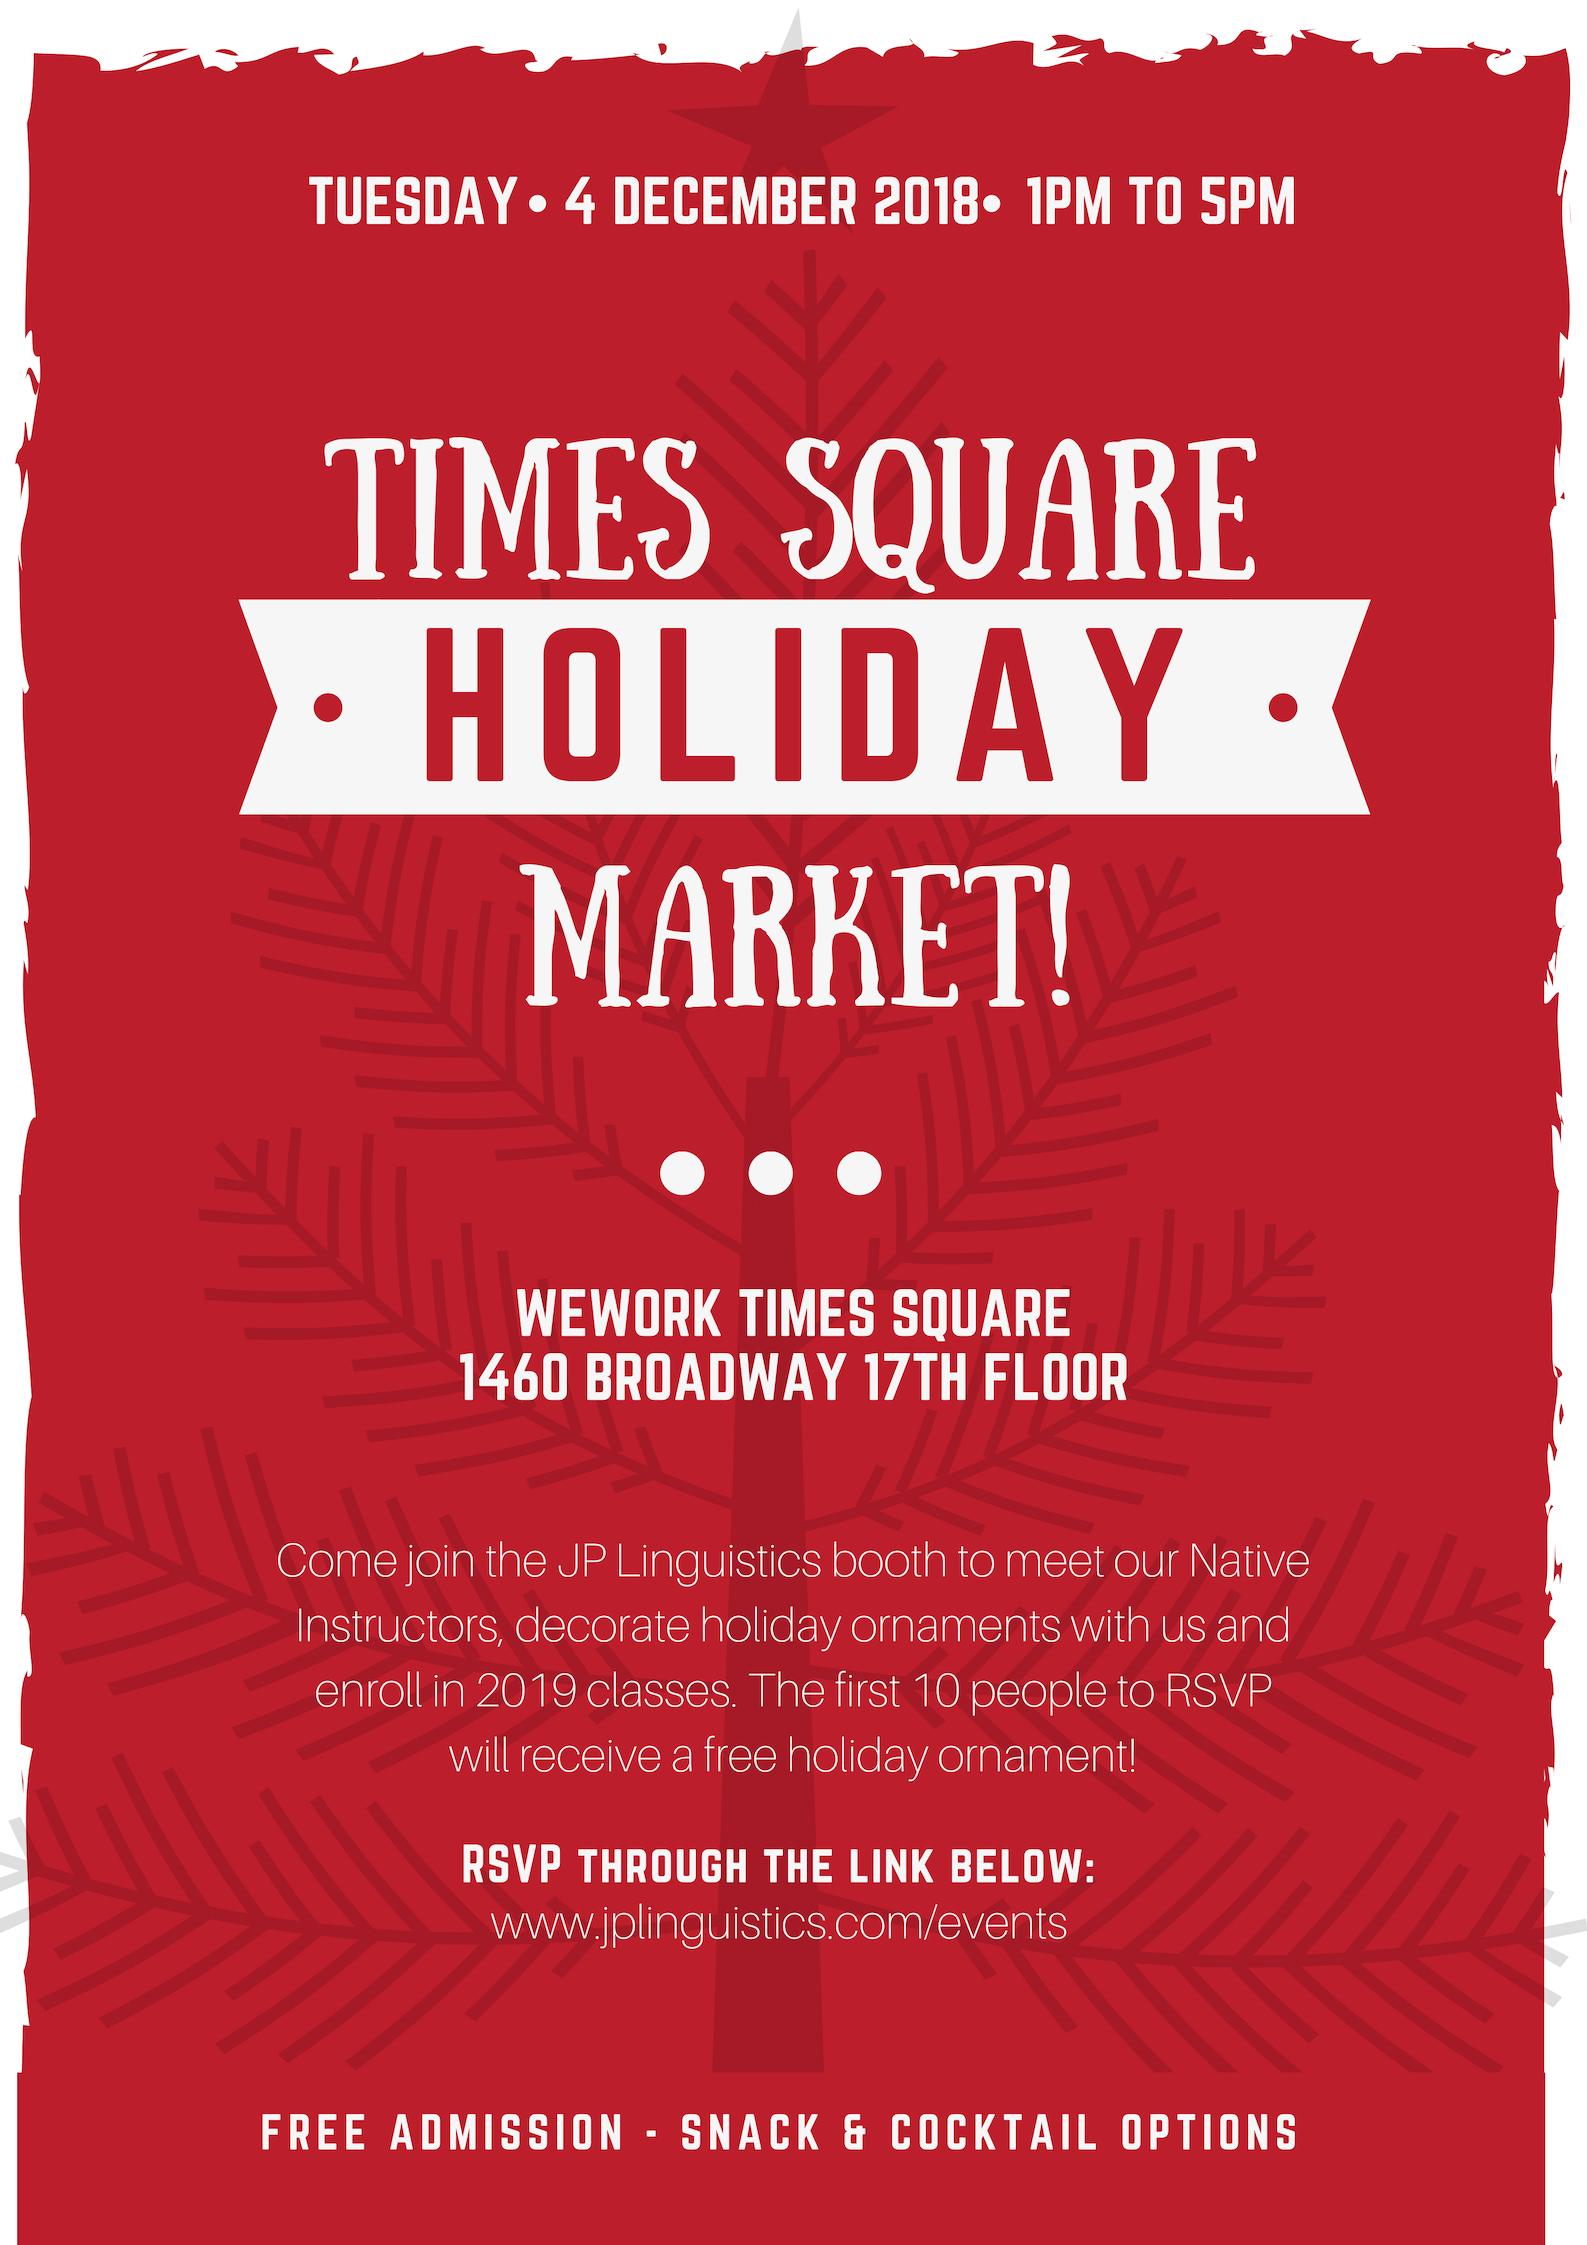 JP Linguistics Times Square Holiday Market WeWork